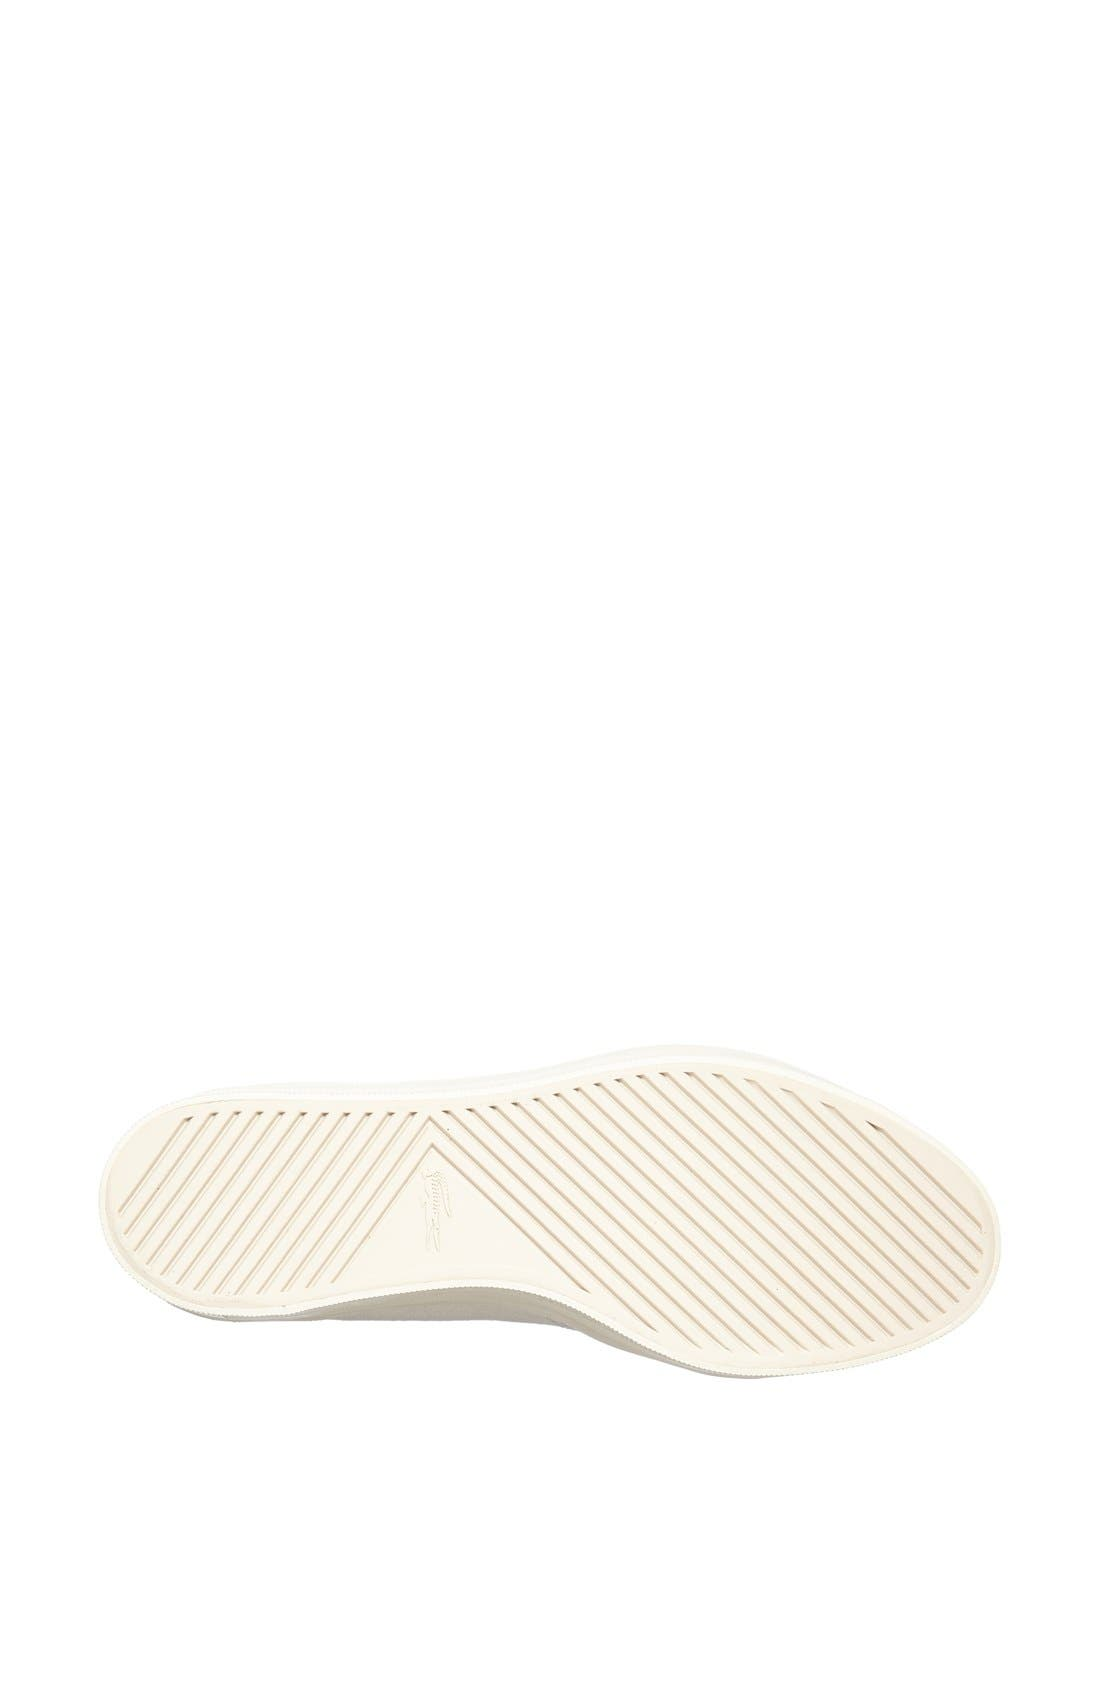 Alternate Image 3  - Lacoste 'Kirton' Platform Sneaker (Women) (Online Exclusive)